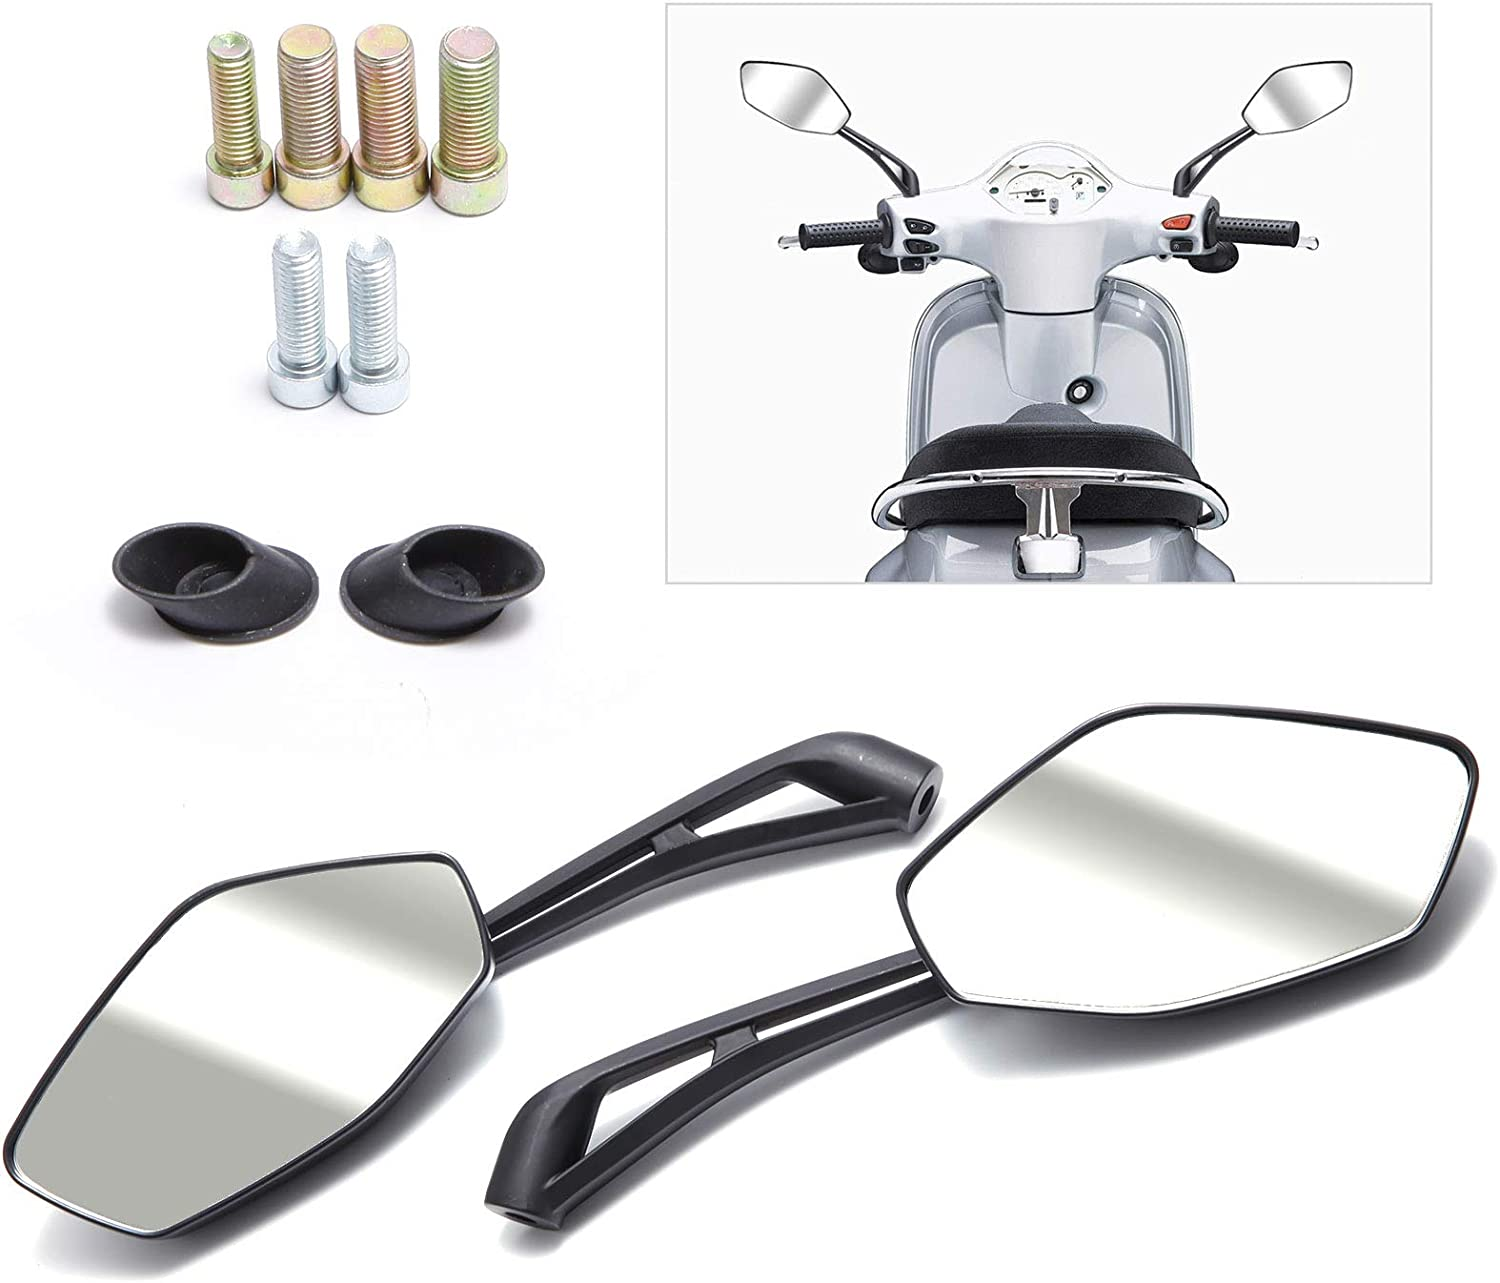 SurePromise Universal Motorcycle Mirrors Rear Vew Side with M8 M10 Clockwise and Counter Clockwise Threaded Bolts for ATV Scooter Cruiser E-Mark Certification